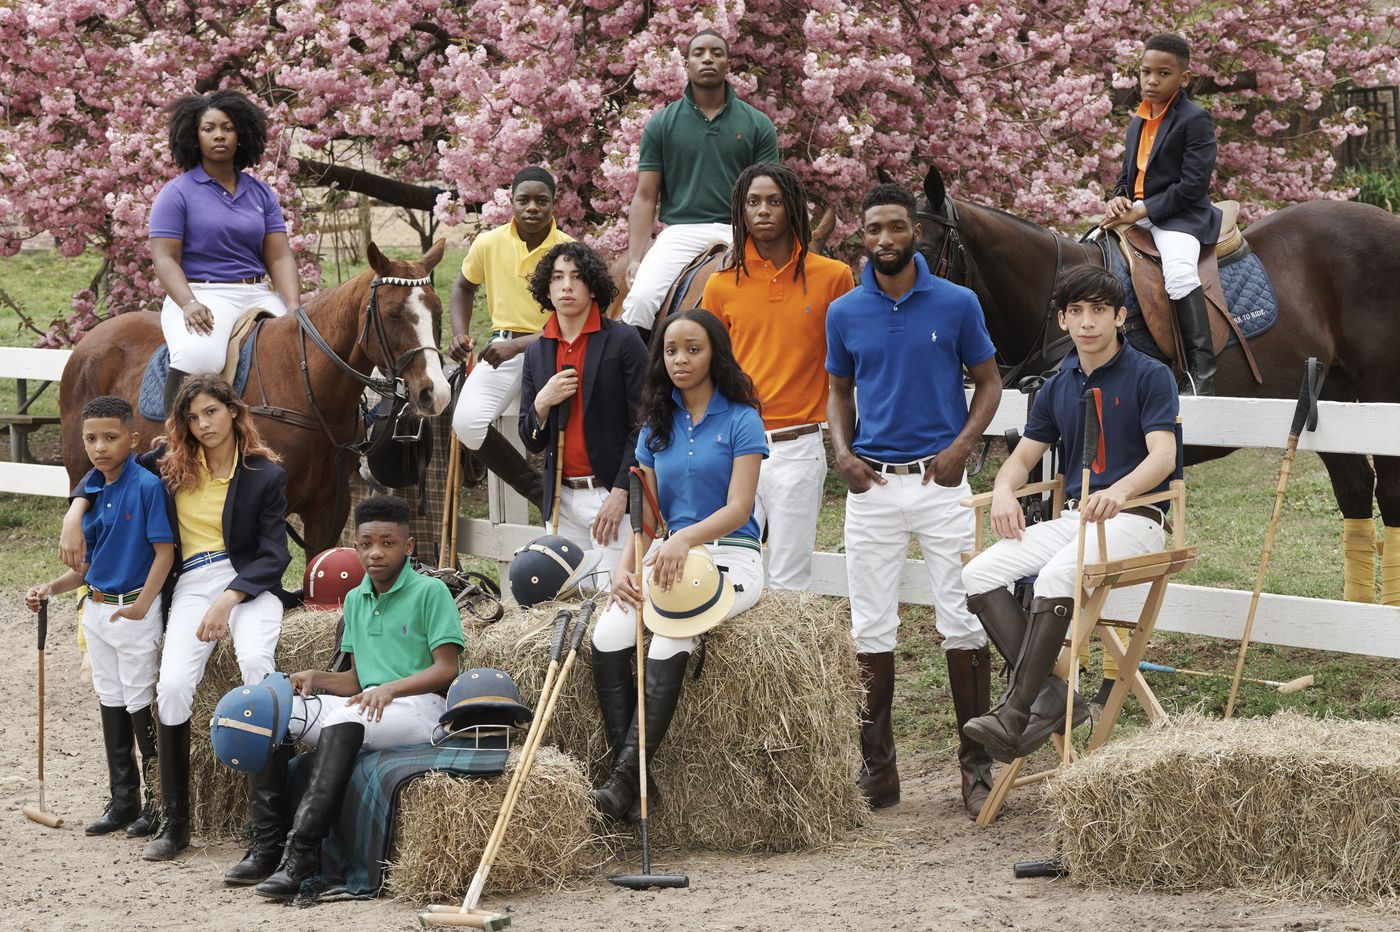 Polo Ralph Lauren visits Philly nonprofit Work to Ride for new campaign